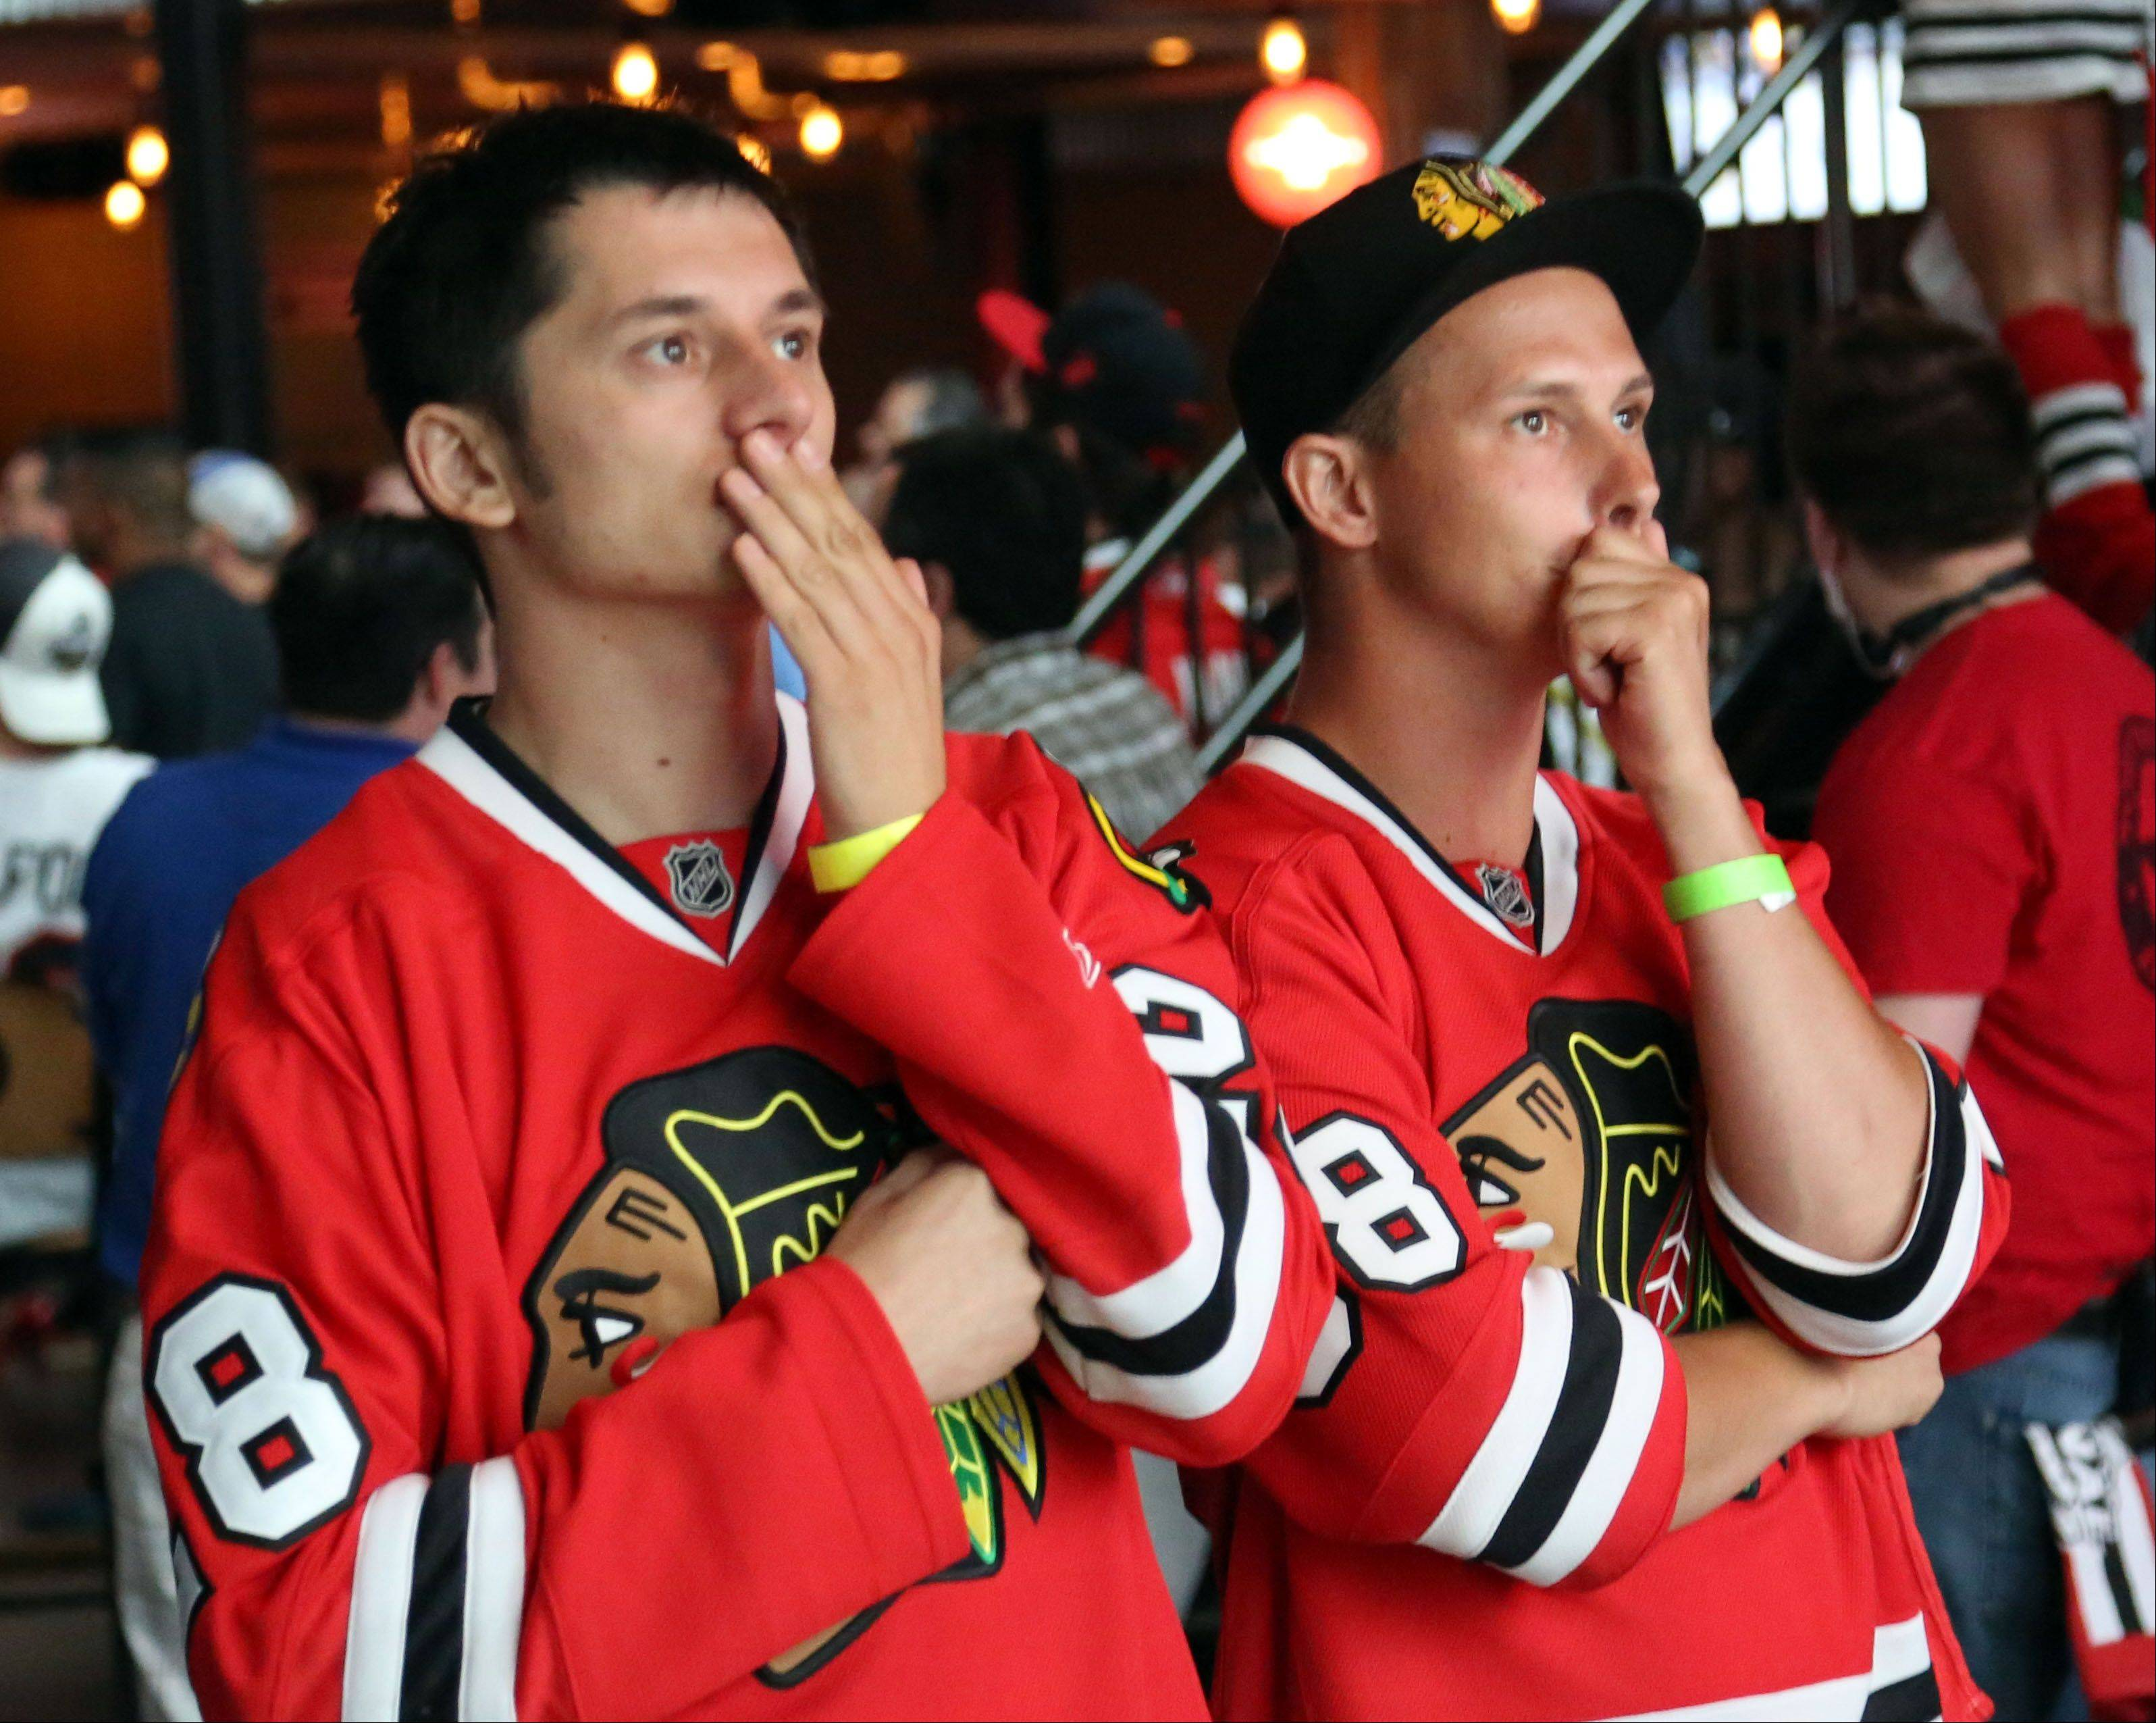 Tom Butryn and Jake Piotrowski, both of Chicago, look worried as the watch Game 6 of the Stanley Cup Finals at Toby Keith's I Love This Bar in Rosemont Monday night.